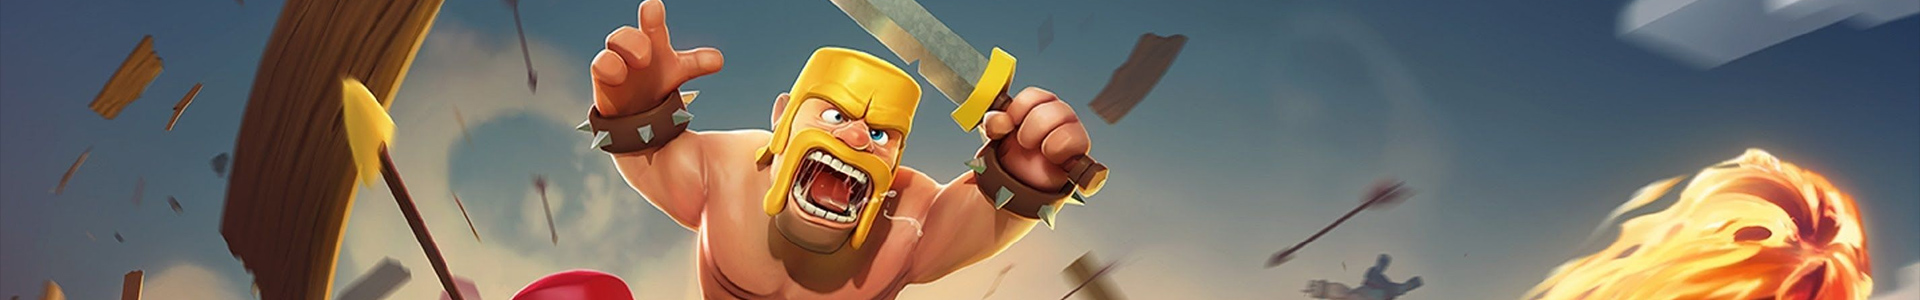 Banner media of Clash of Clans video game.